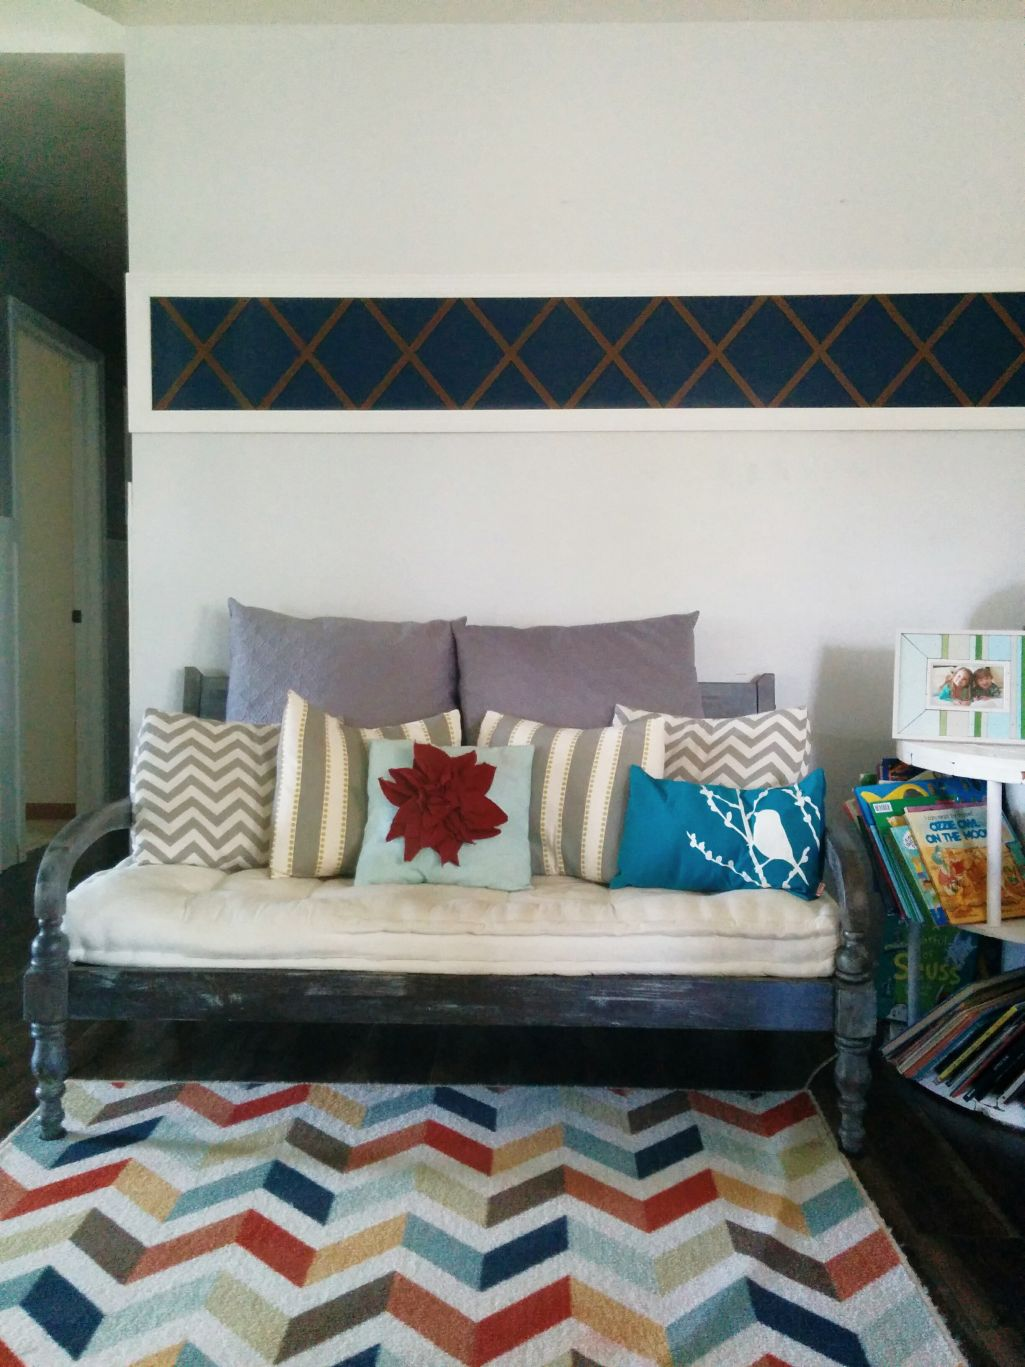 A New Way To Add Detailing To A Wall, Wood Trim With X\'s